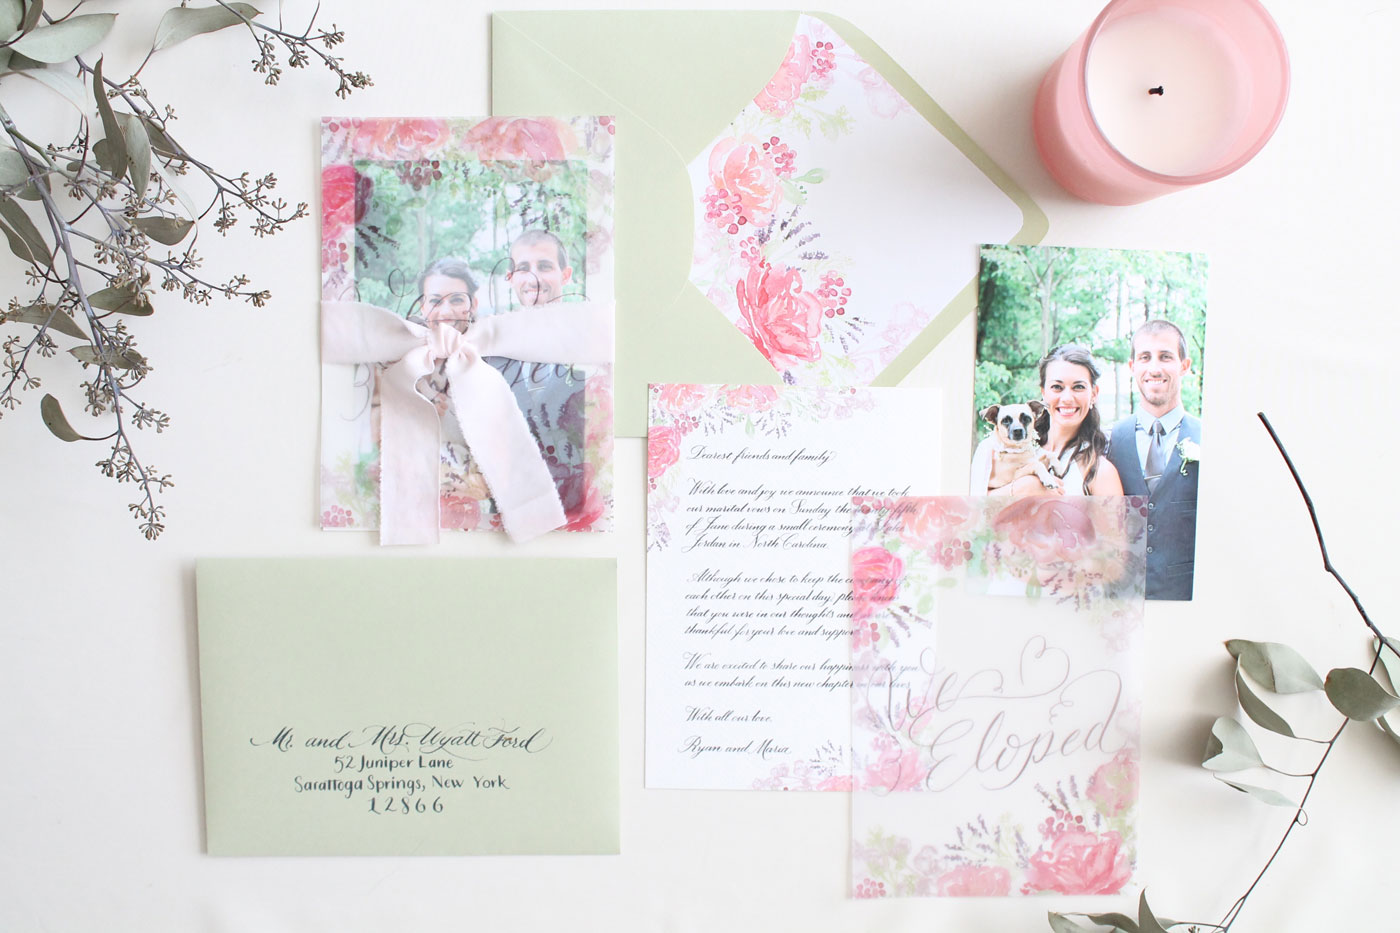 Elopement announcement suite, custom invitations from Blush and Blue Designs. calligraphy and watercolor